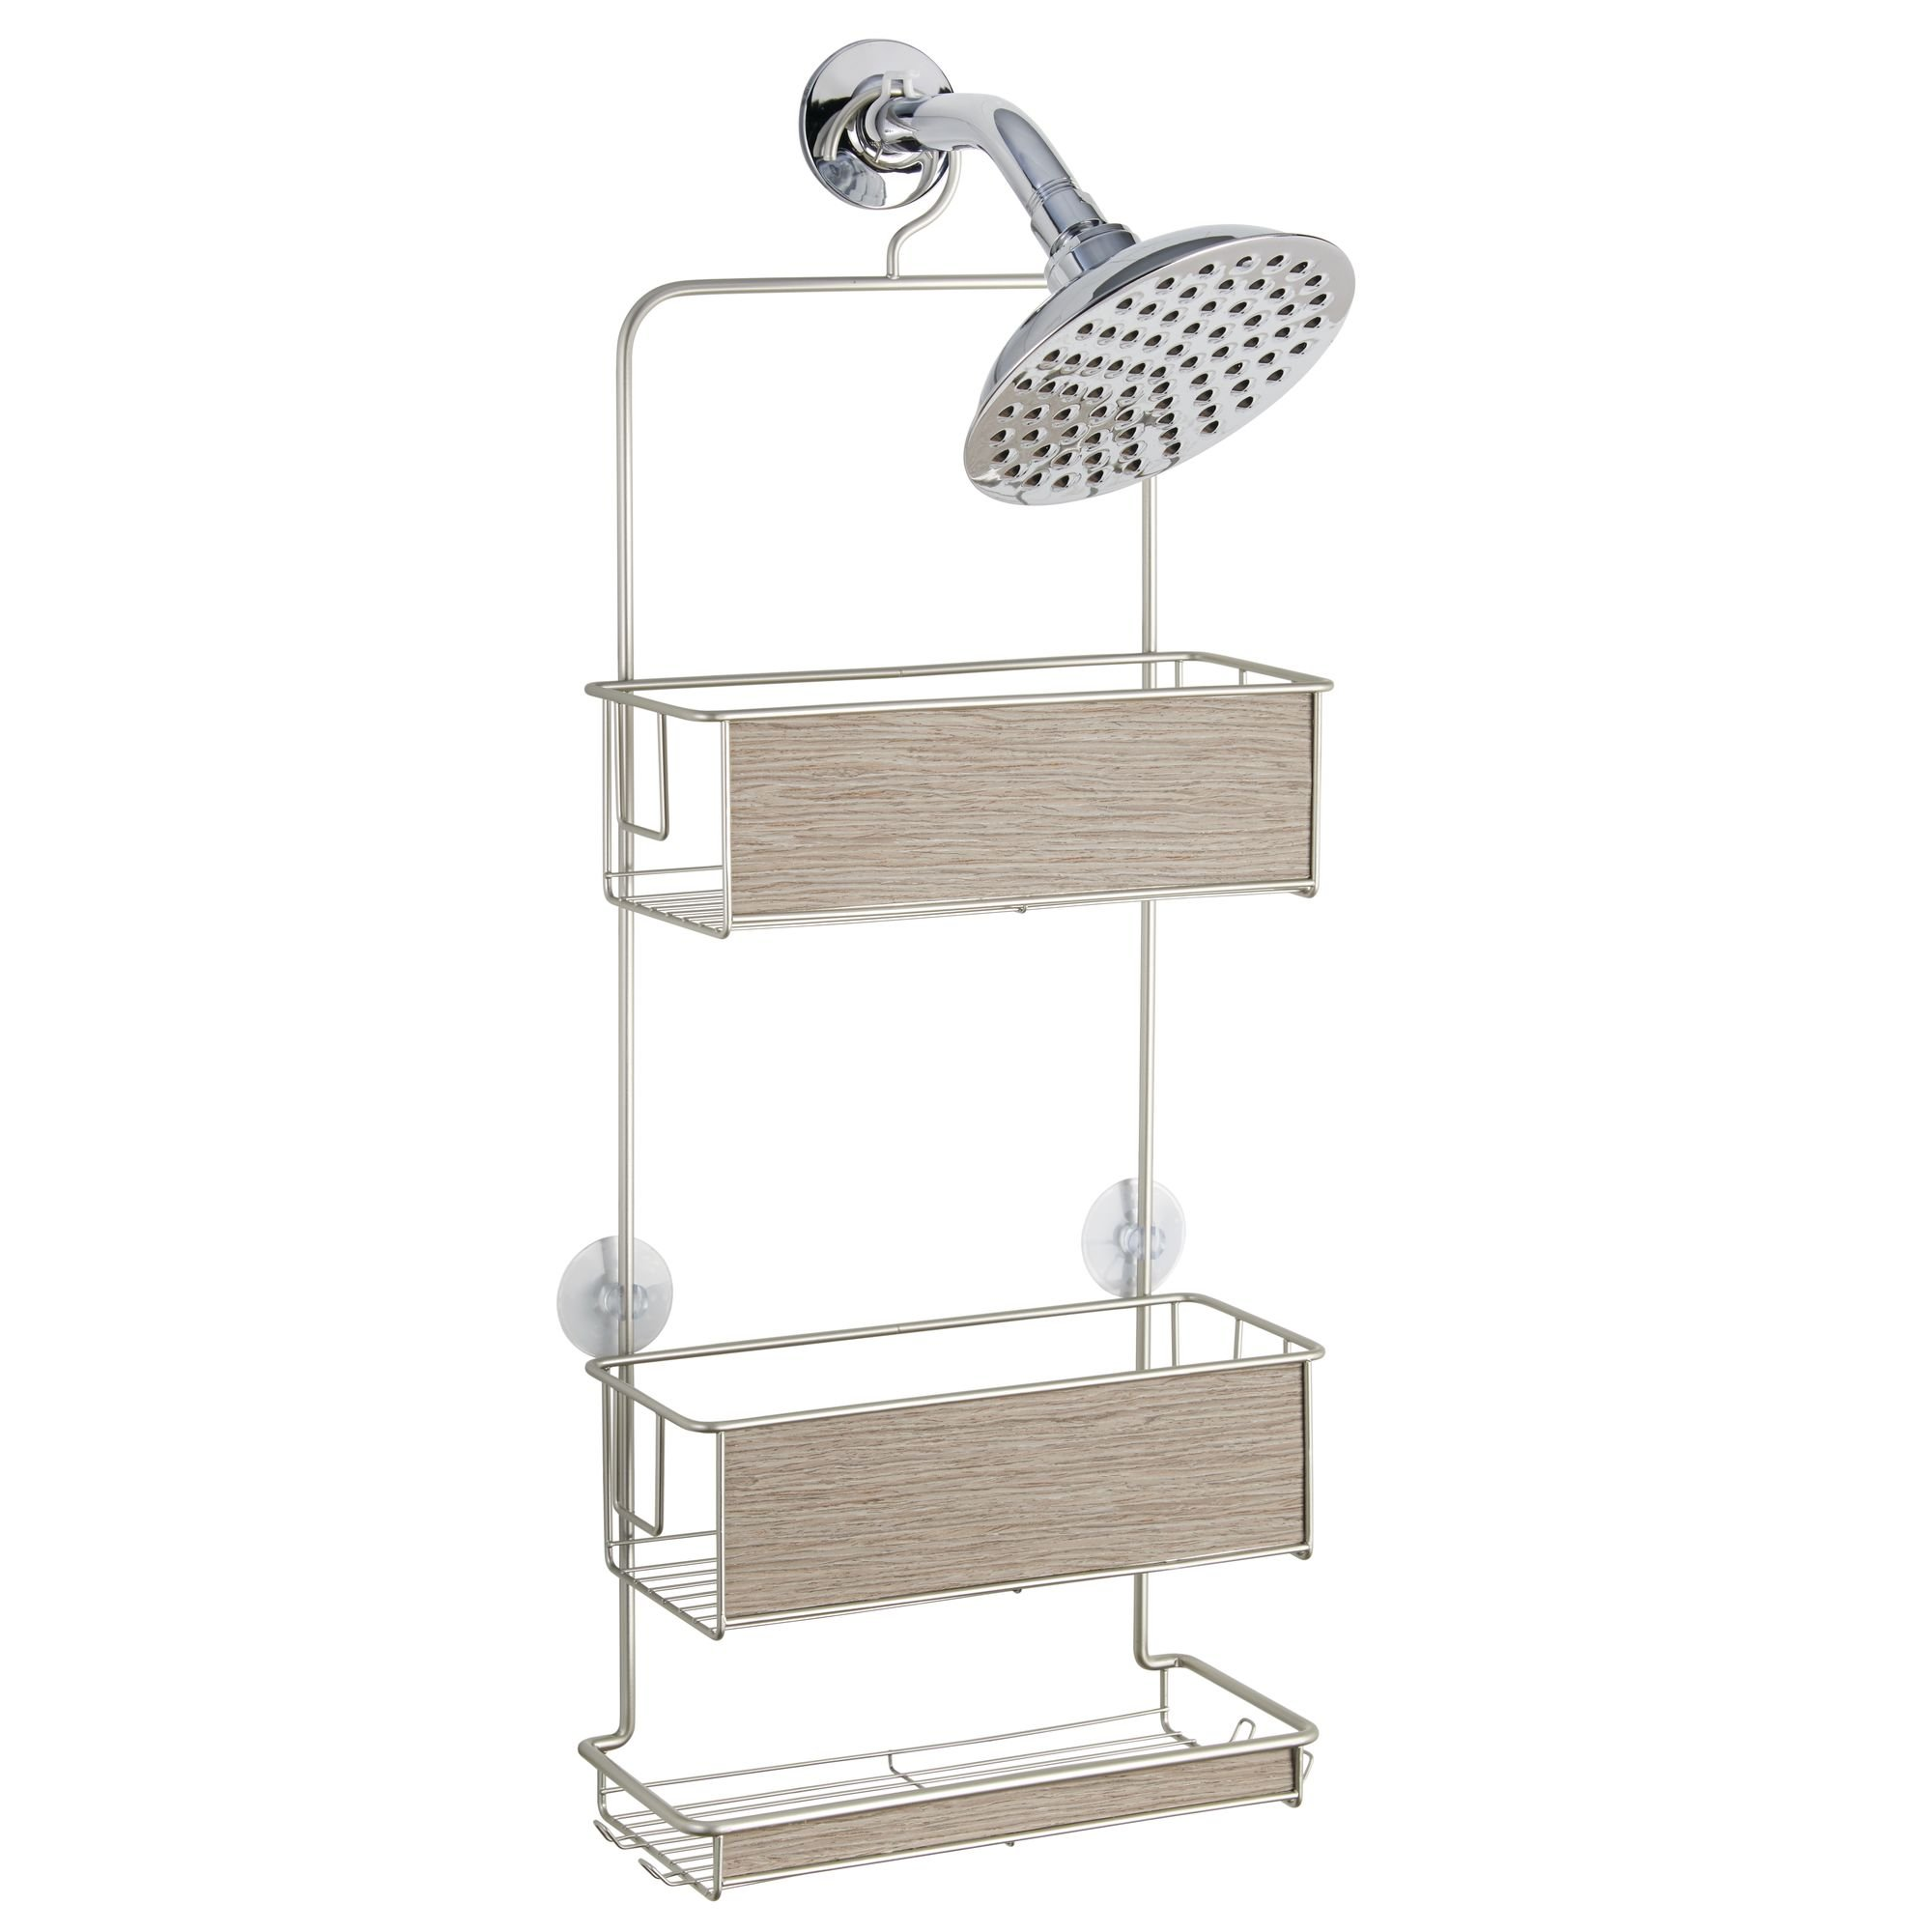 InterDesign RealWood Shower Caddy - Bathroom Storage Shelves for Shampoo, Conditioner and Soap, Satin/Gray Wood